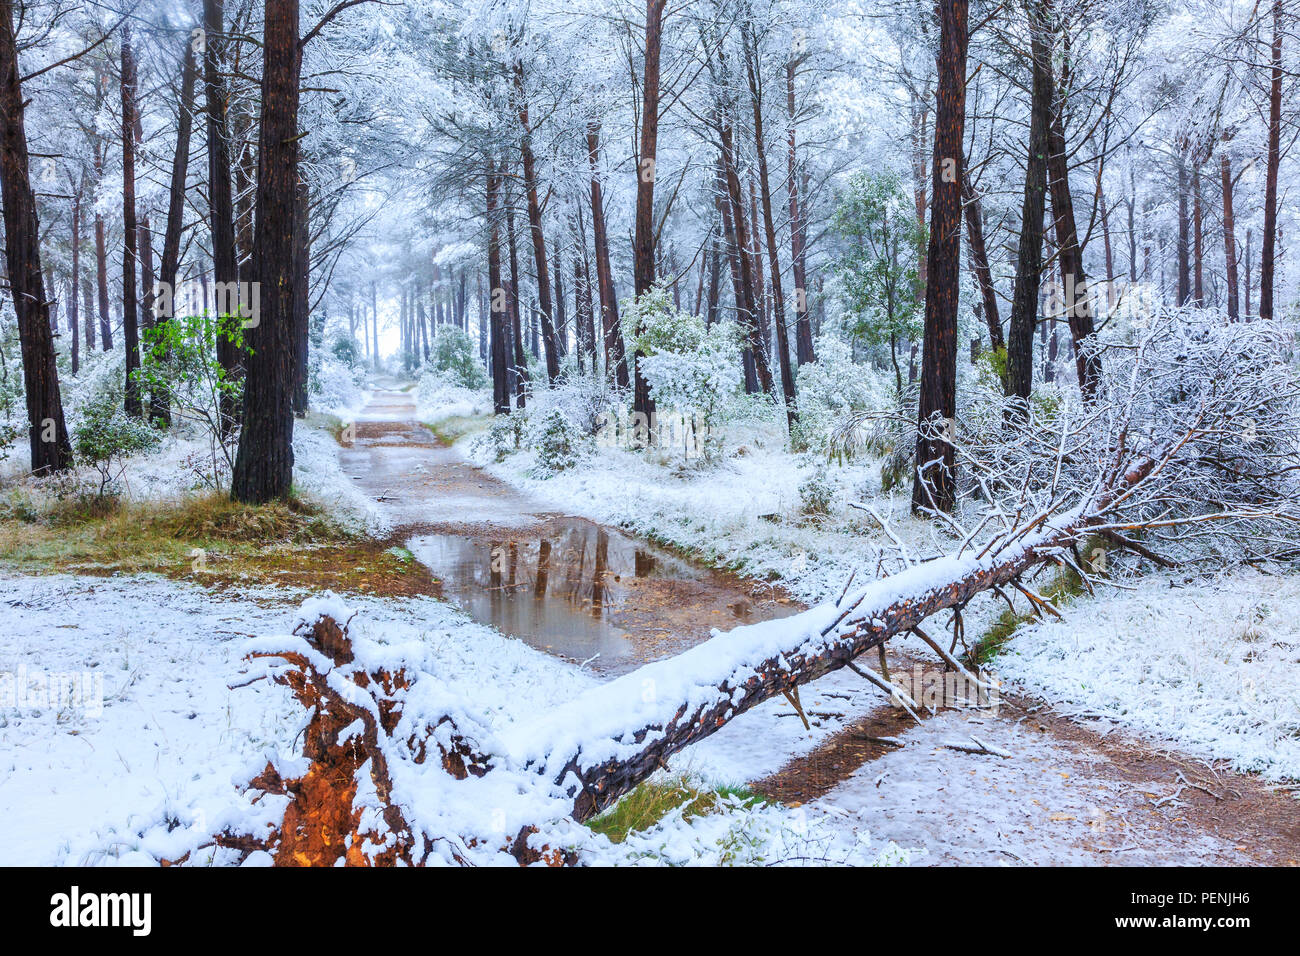 Conifer forest and snow. Ayegui. - Stock Image